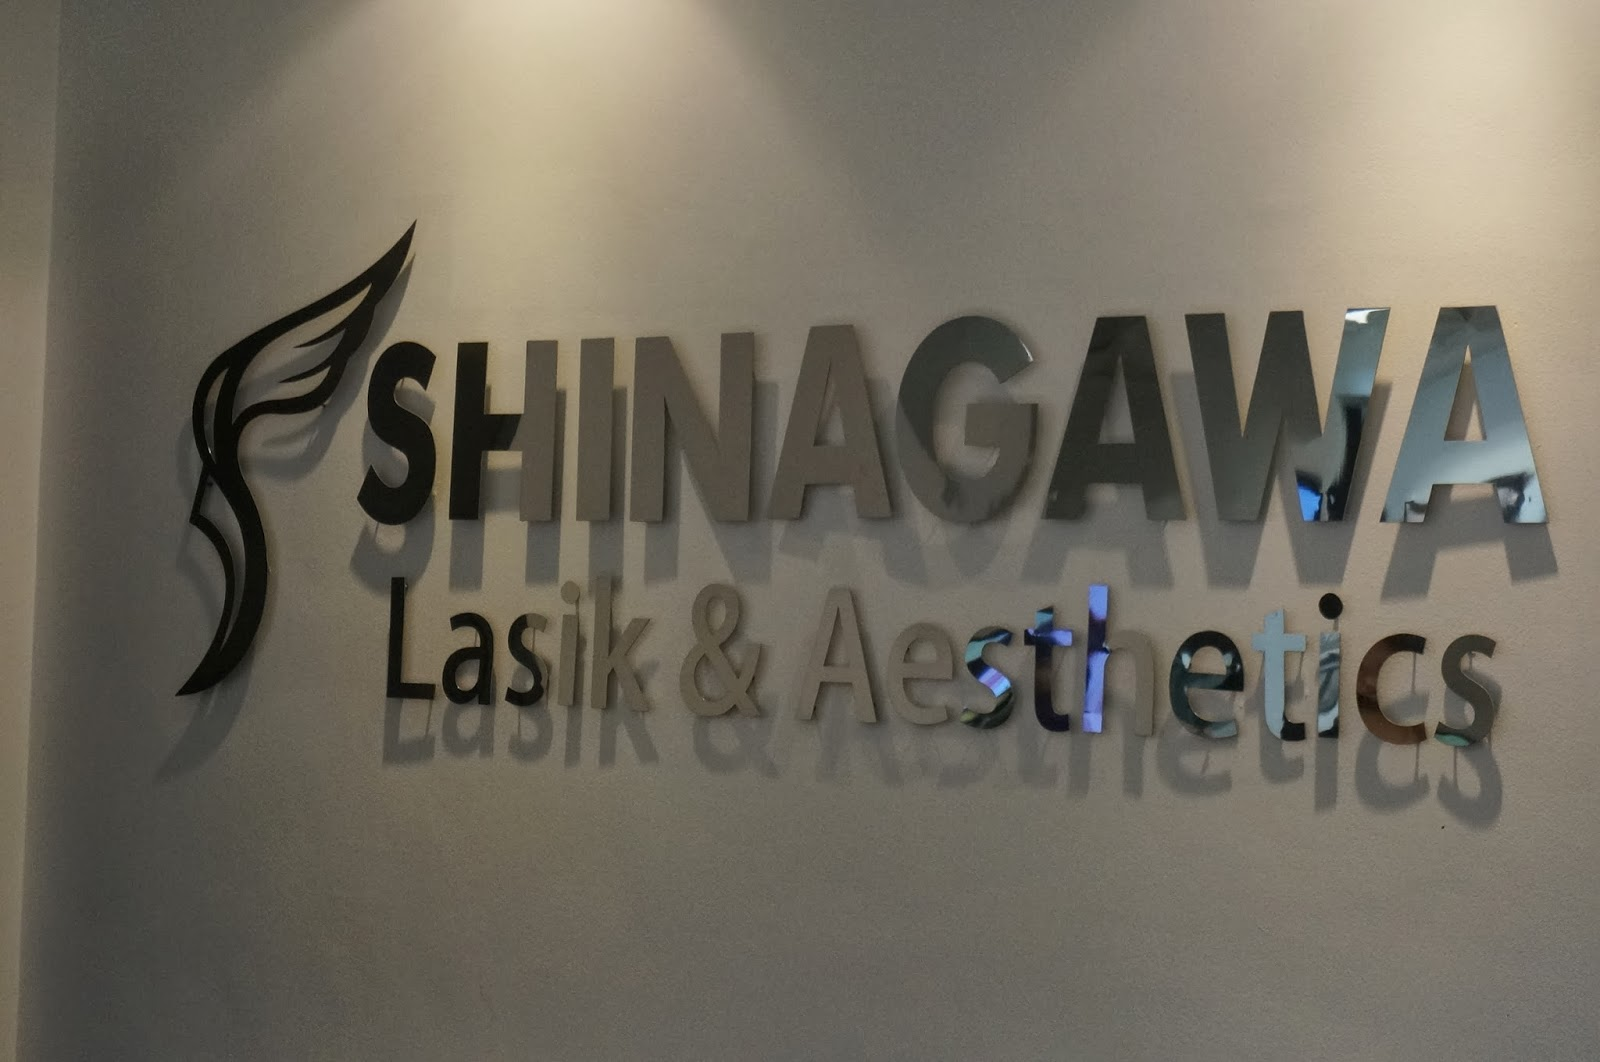 Occasions of JOY: Shinagawa Lasik & Aesthetics Philippines